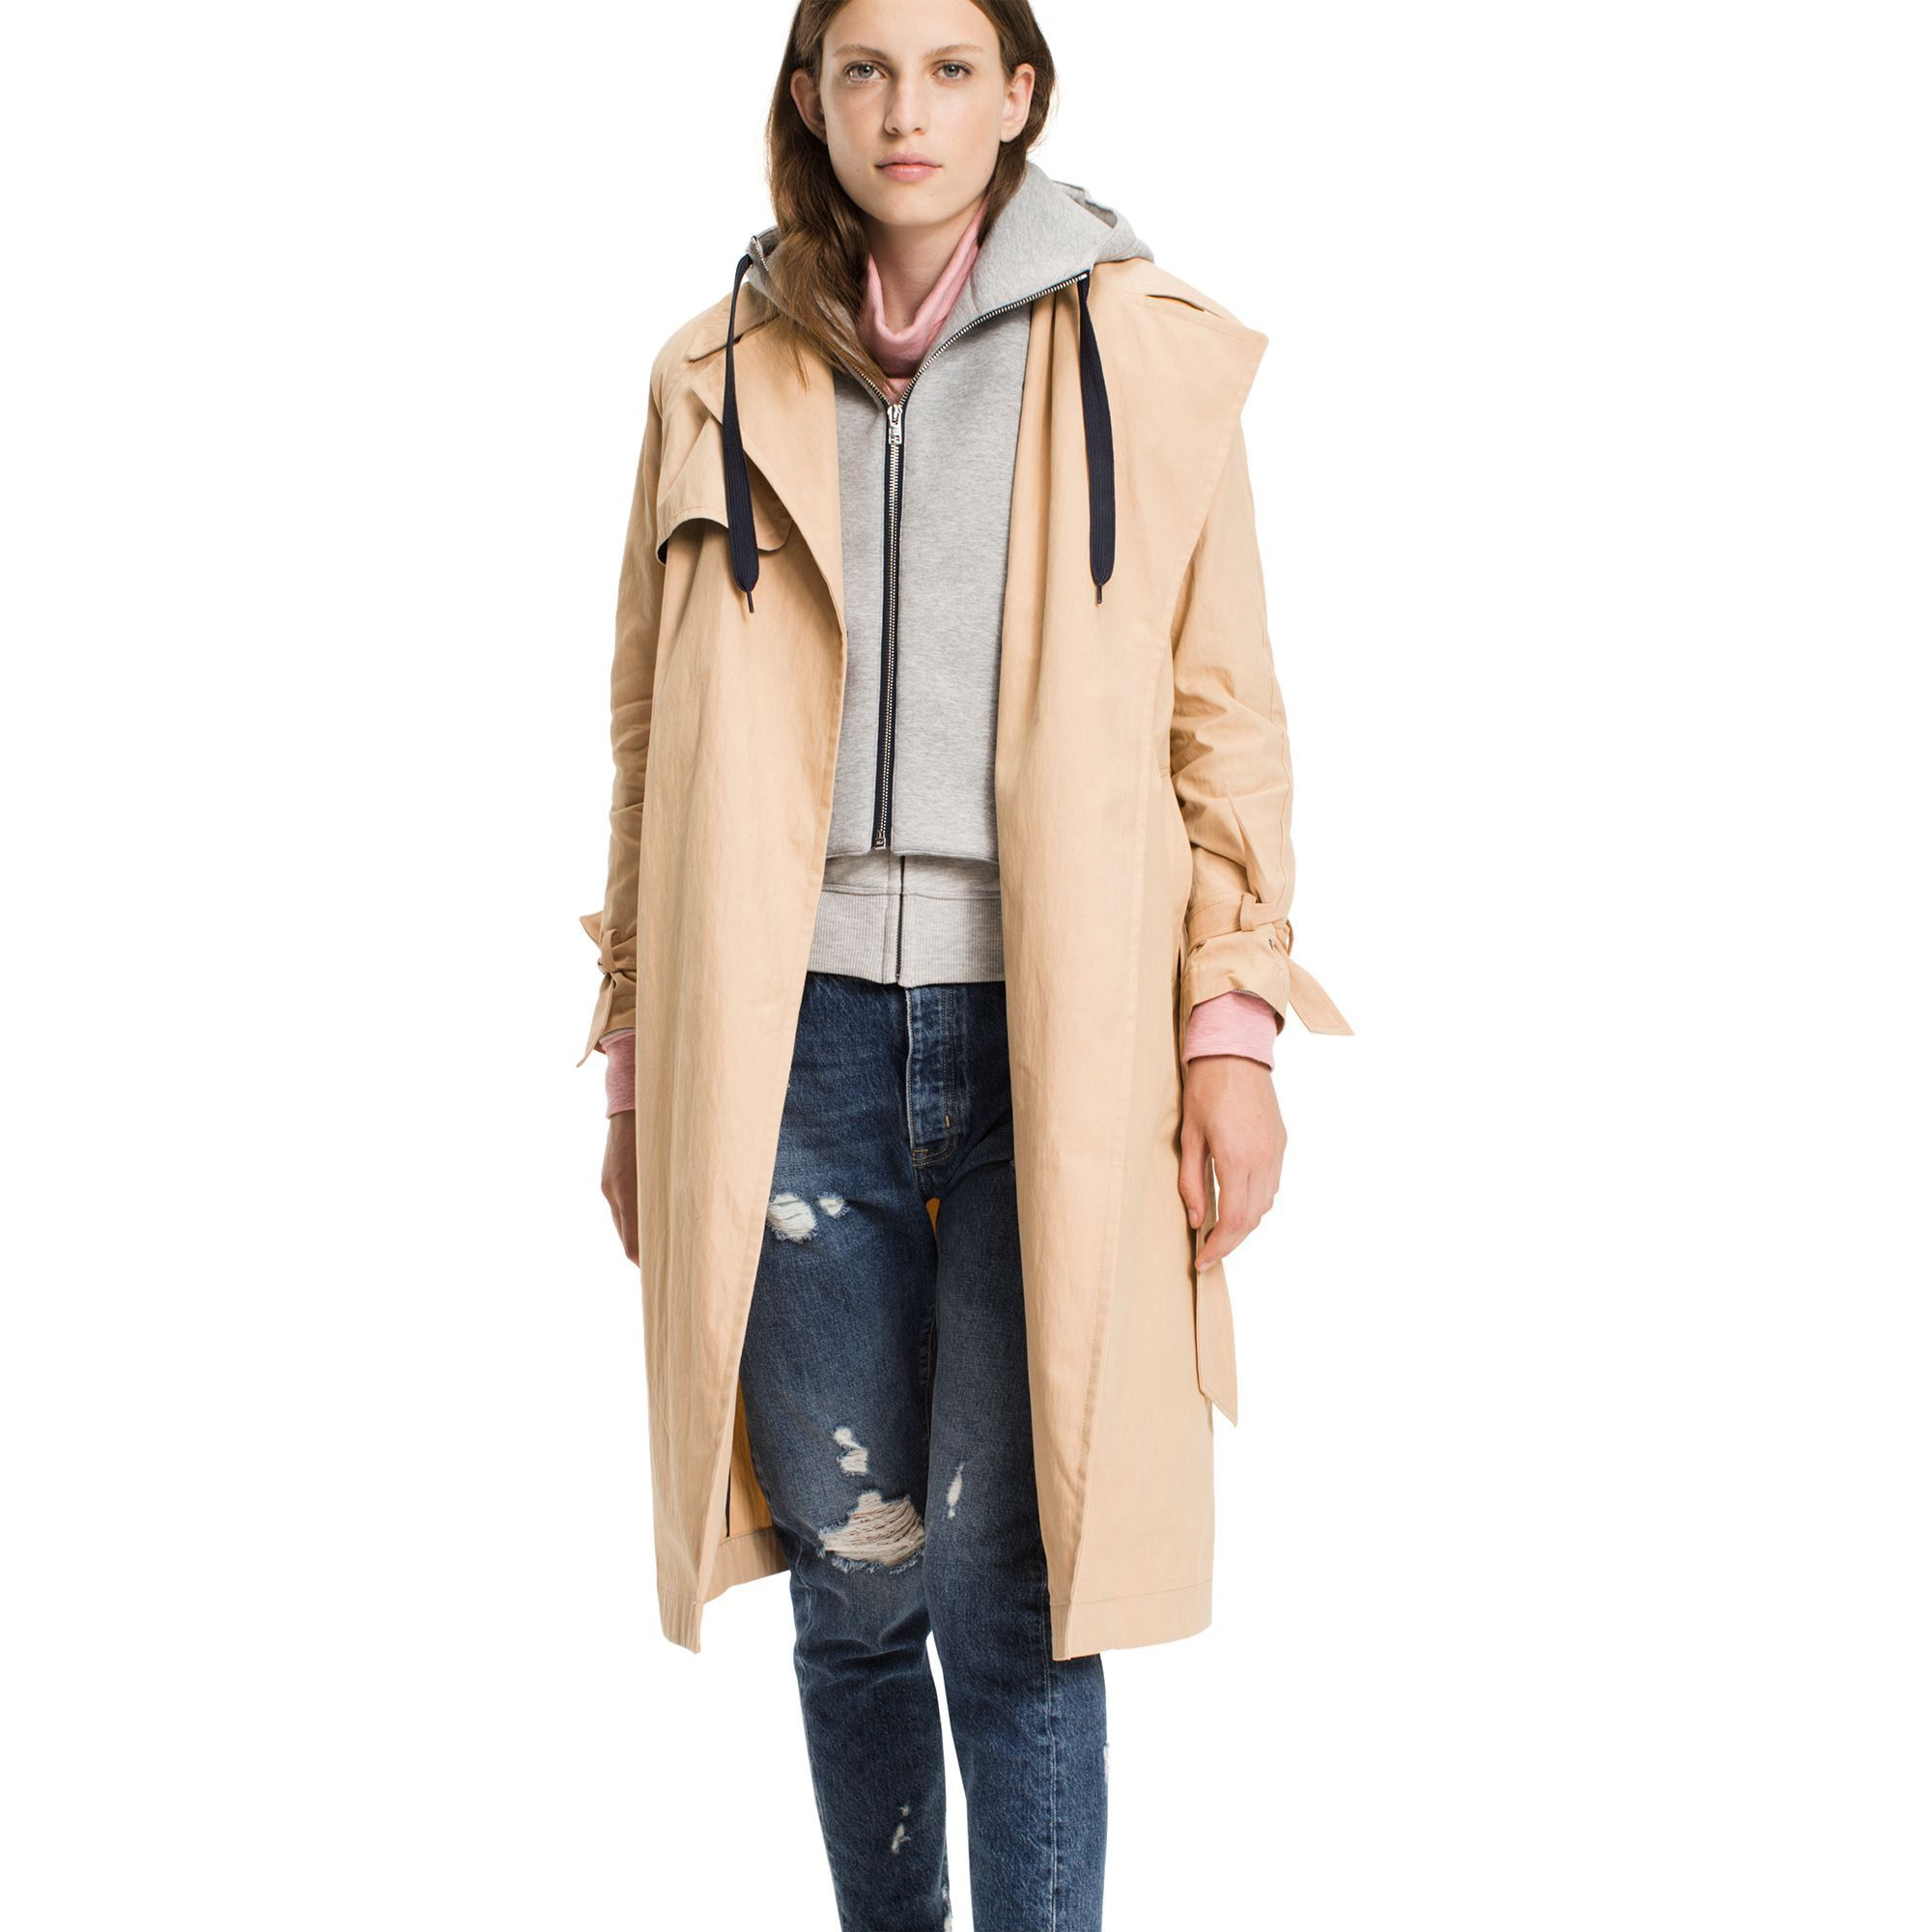 Tommy Hilfiger Removeble Hood Trench Coat Tommyhilfiger Cloth Coat Tommy Hilfiger Trench Coat [ 2000 x 2000 Pixel ]